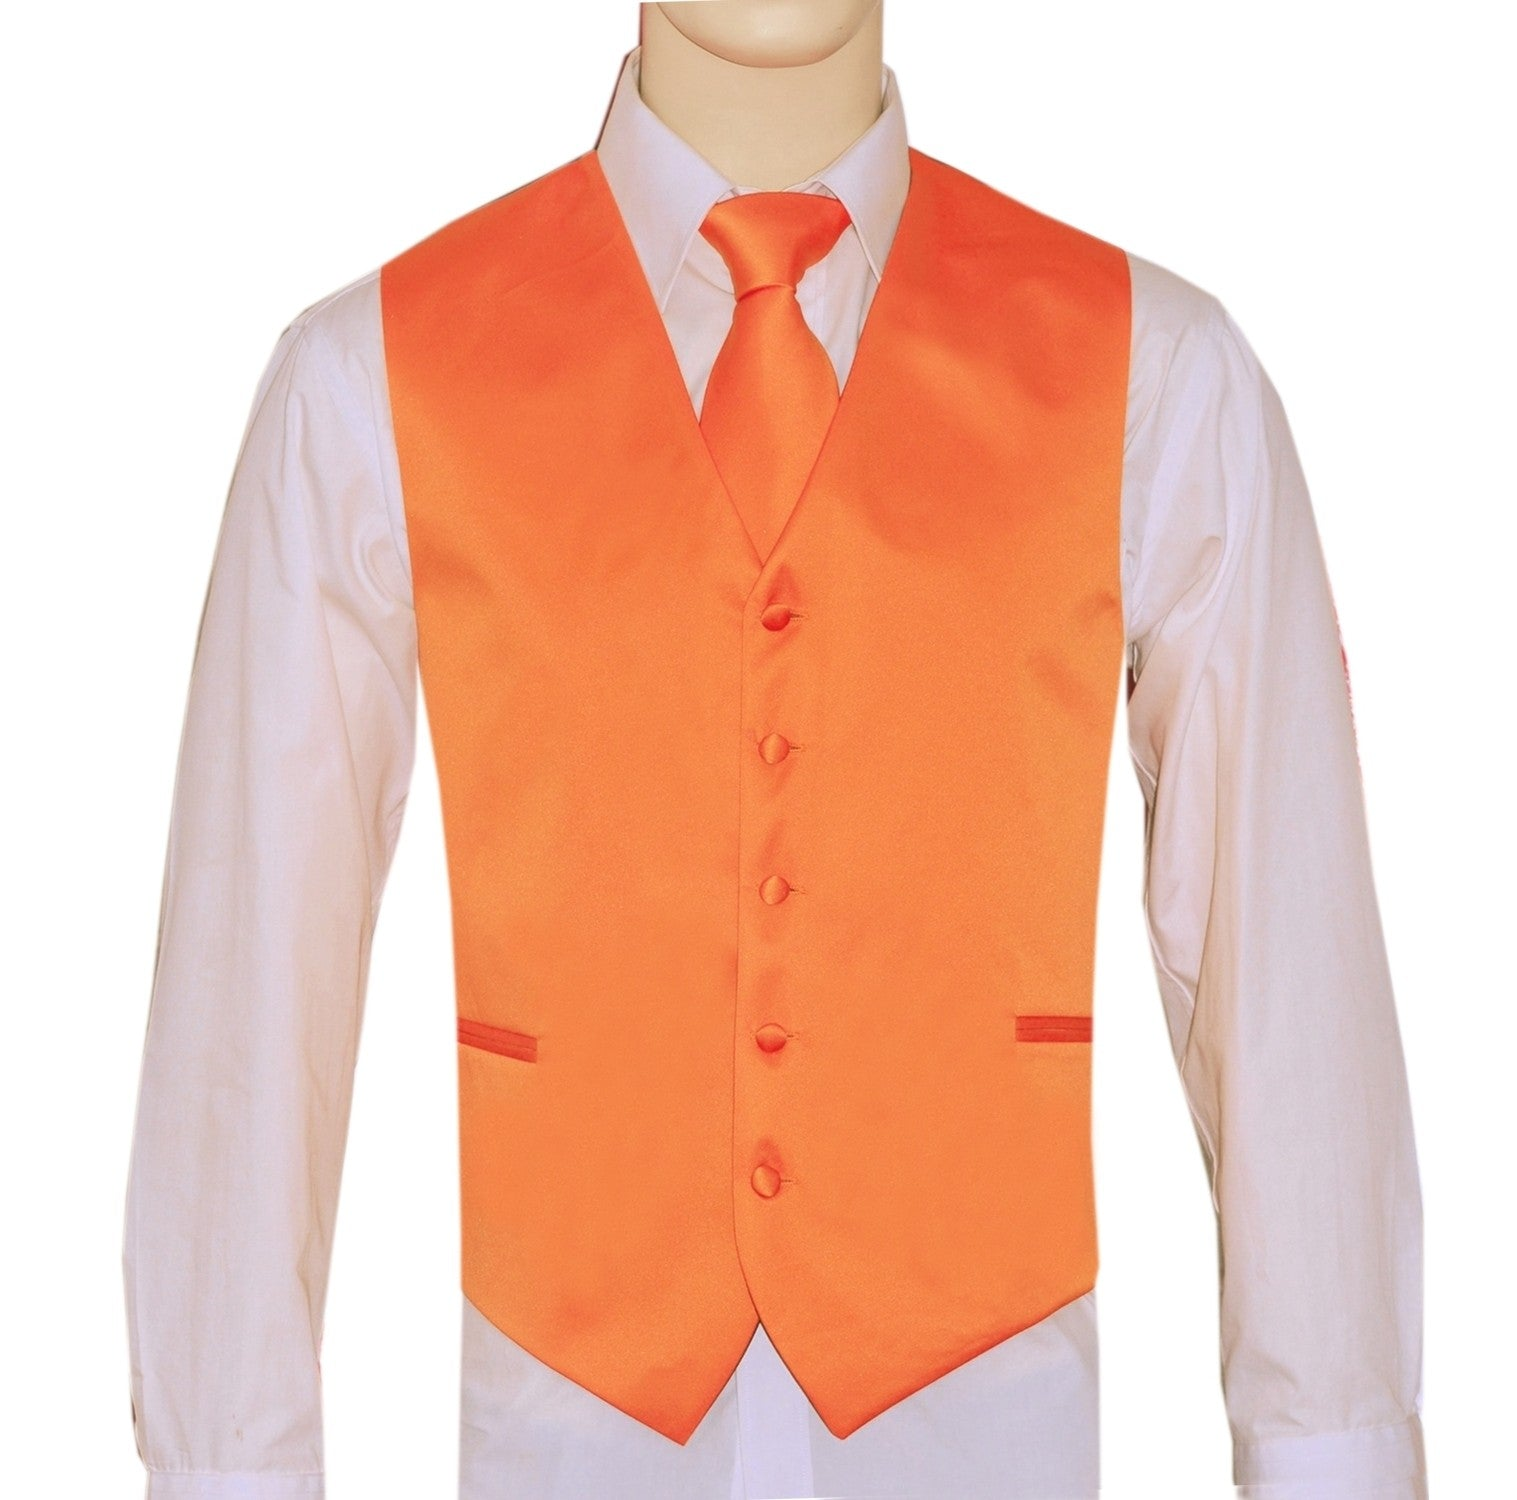 Orange Vest and Tie Set